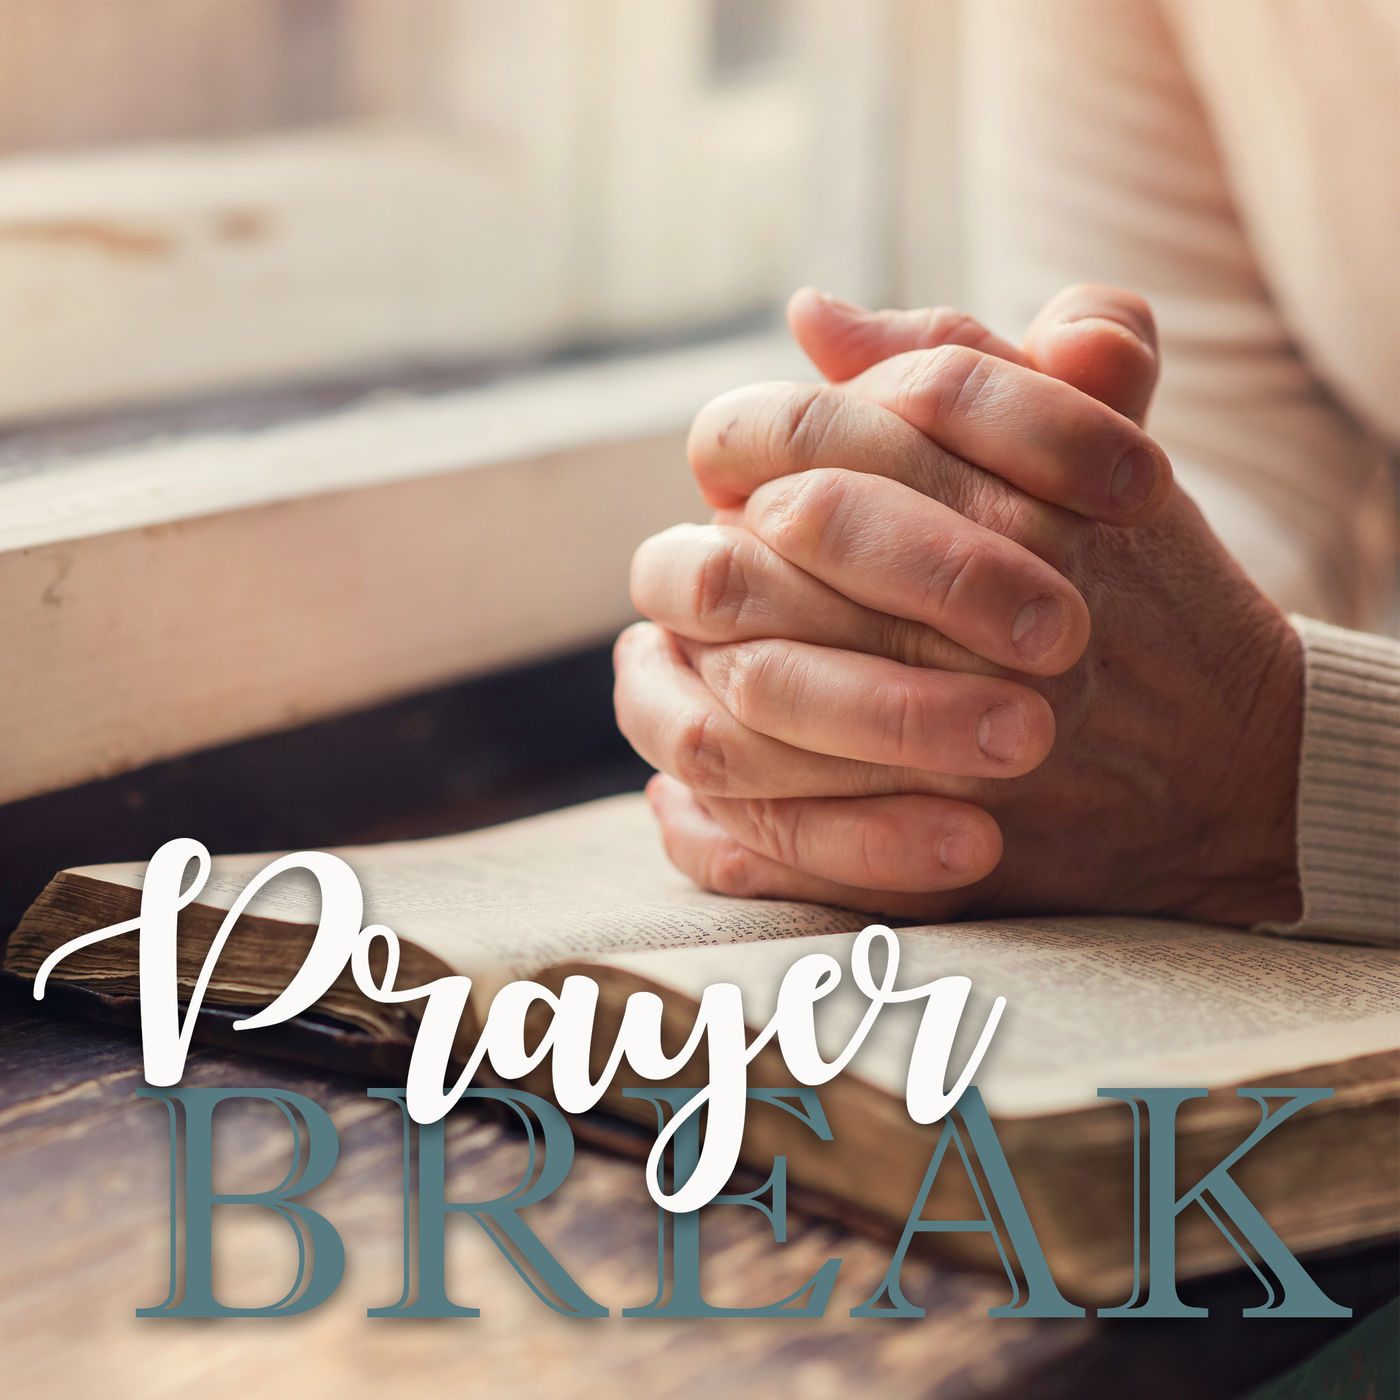 Prayer Break (Special Episode): Protection During Hurricane Florence 2018